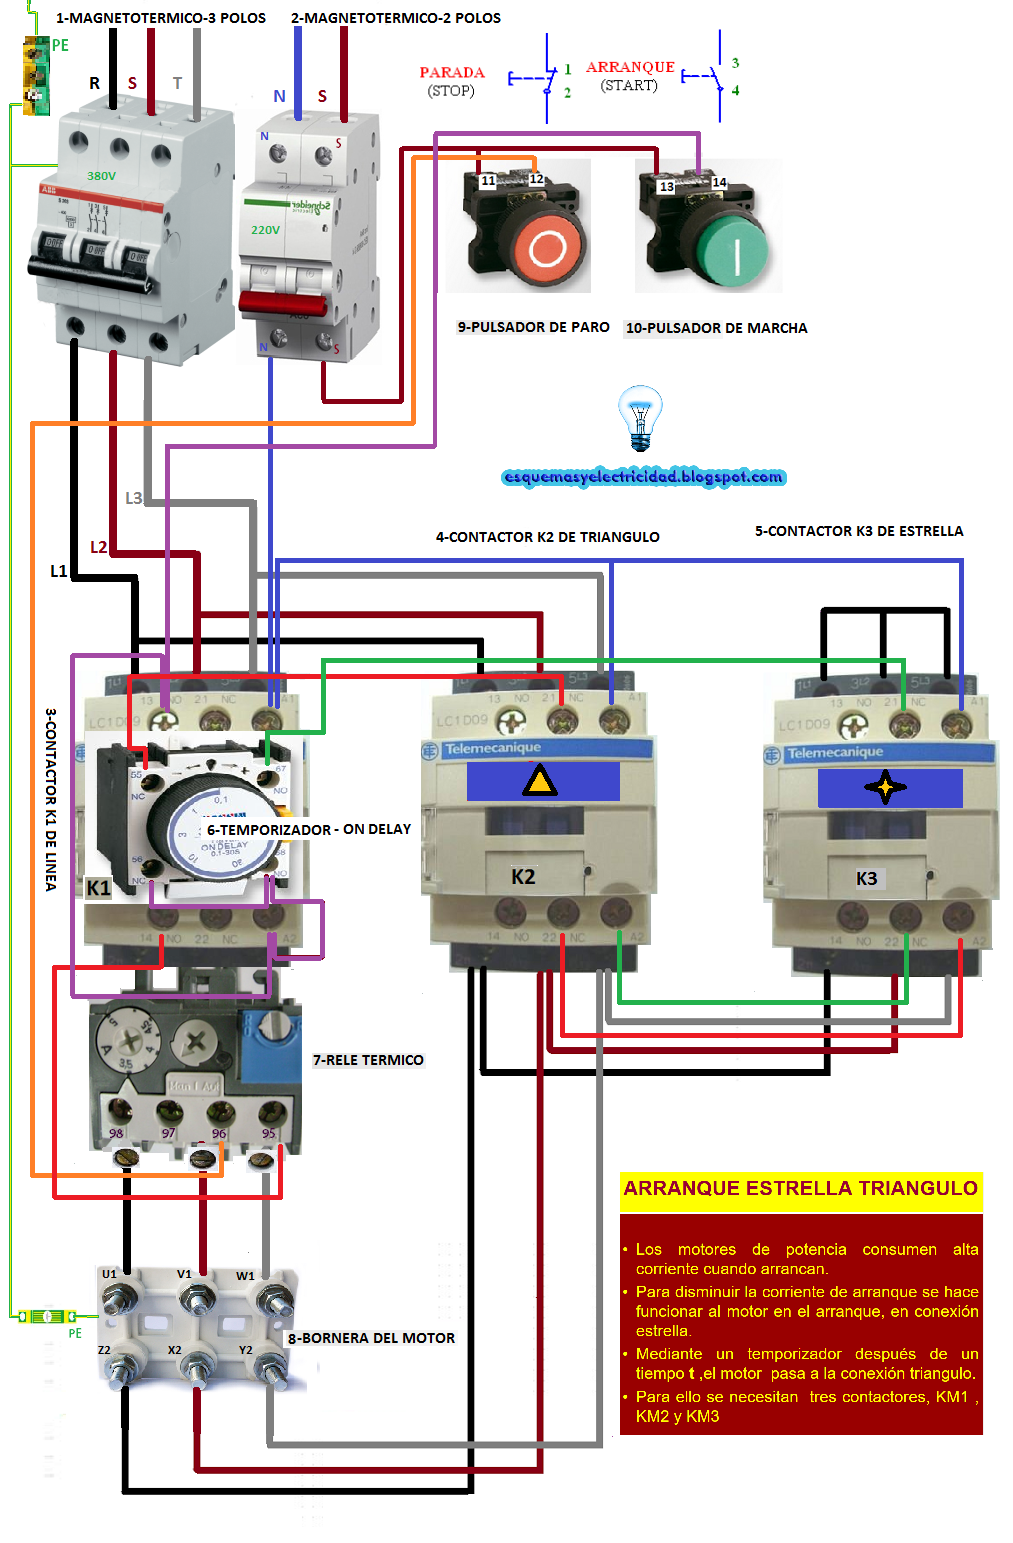 Wiring Diagram Of Dol Starter A moreover Dc Fan Controller in addition Forward Reverse Ac Motor Control further Amf Control Panel Circuit Diagram Be besides Star Delta Kecik. on star delta starter control circuit diagram